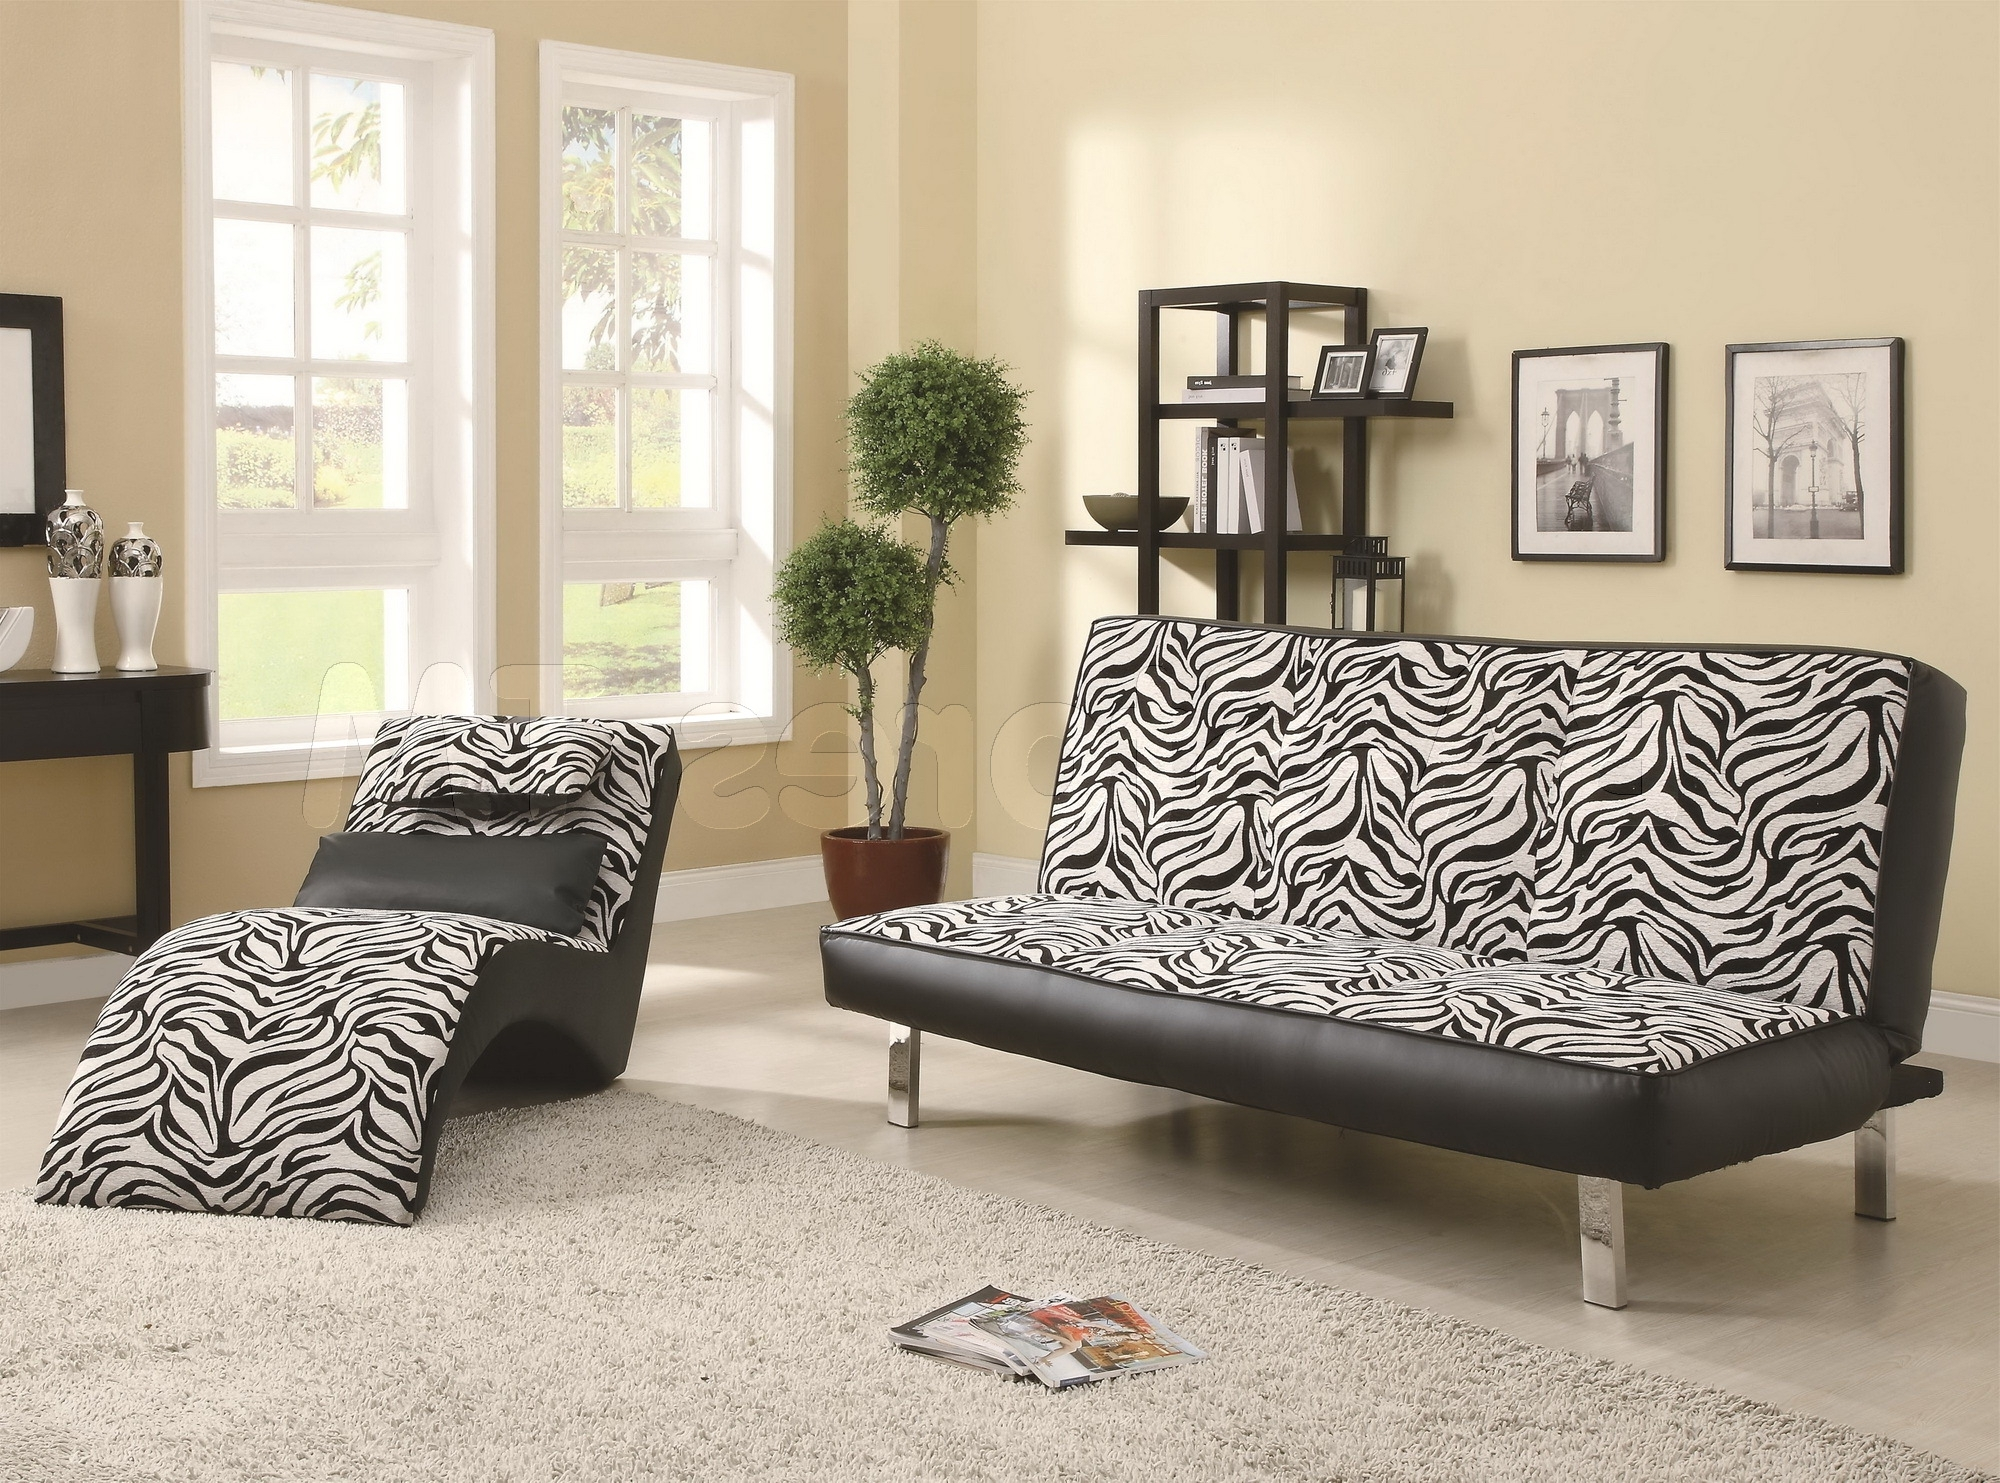 Famous Zebra Chaise Lounges Within Black White Zebra Leather Chaise Lounge Chair On Mocha Fur Rug (View 11 of 15)